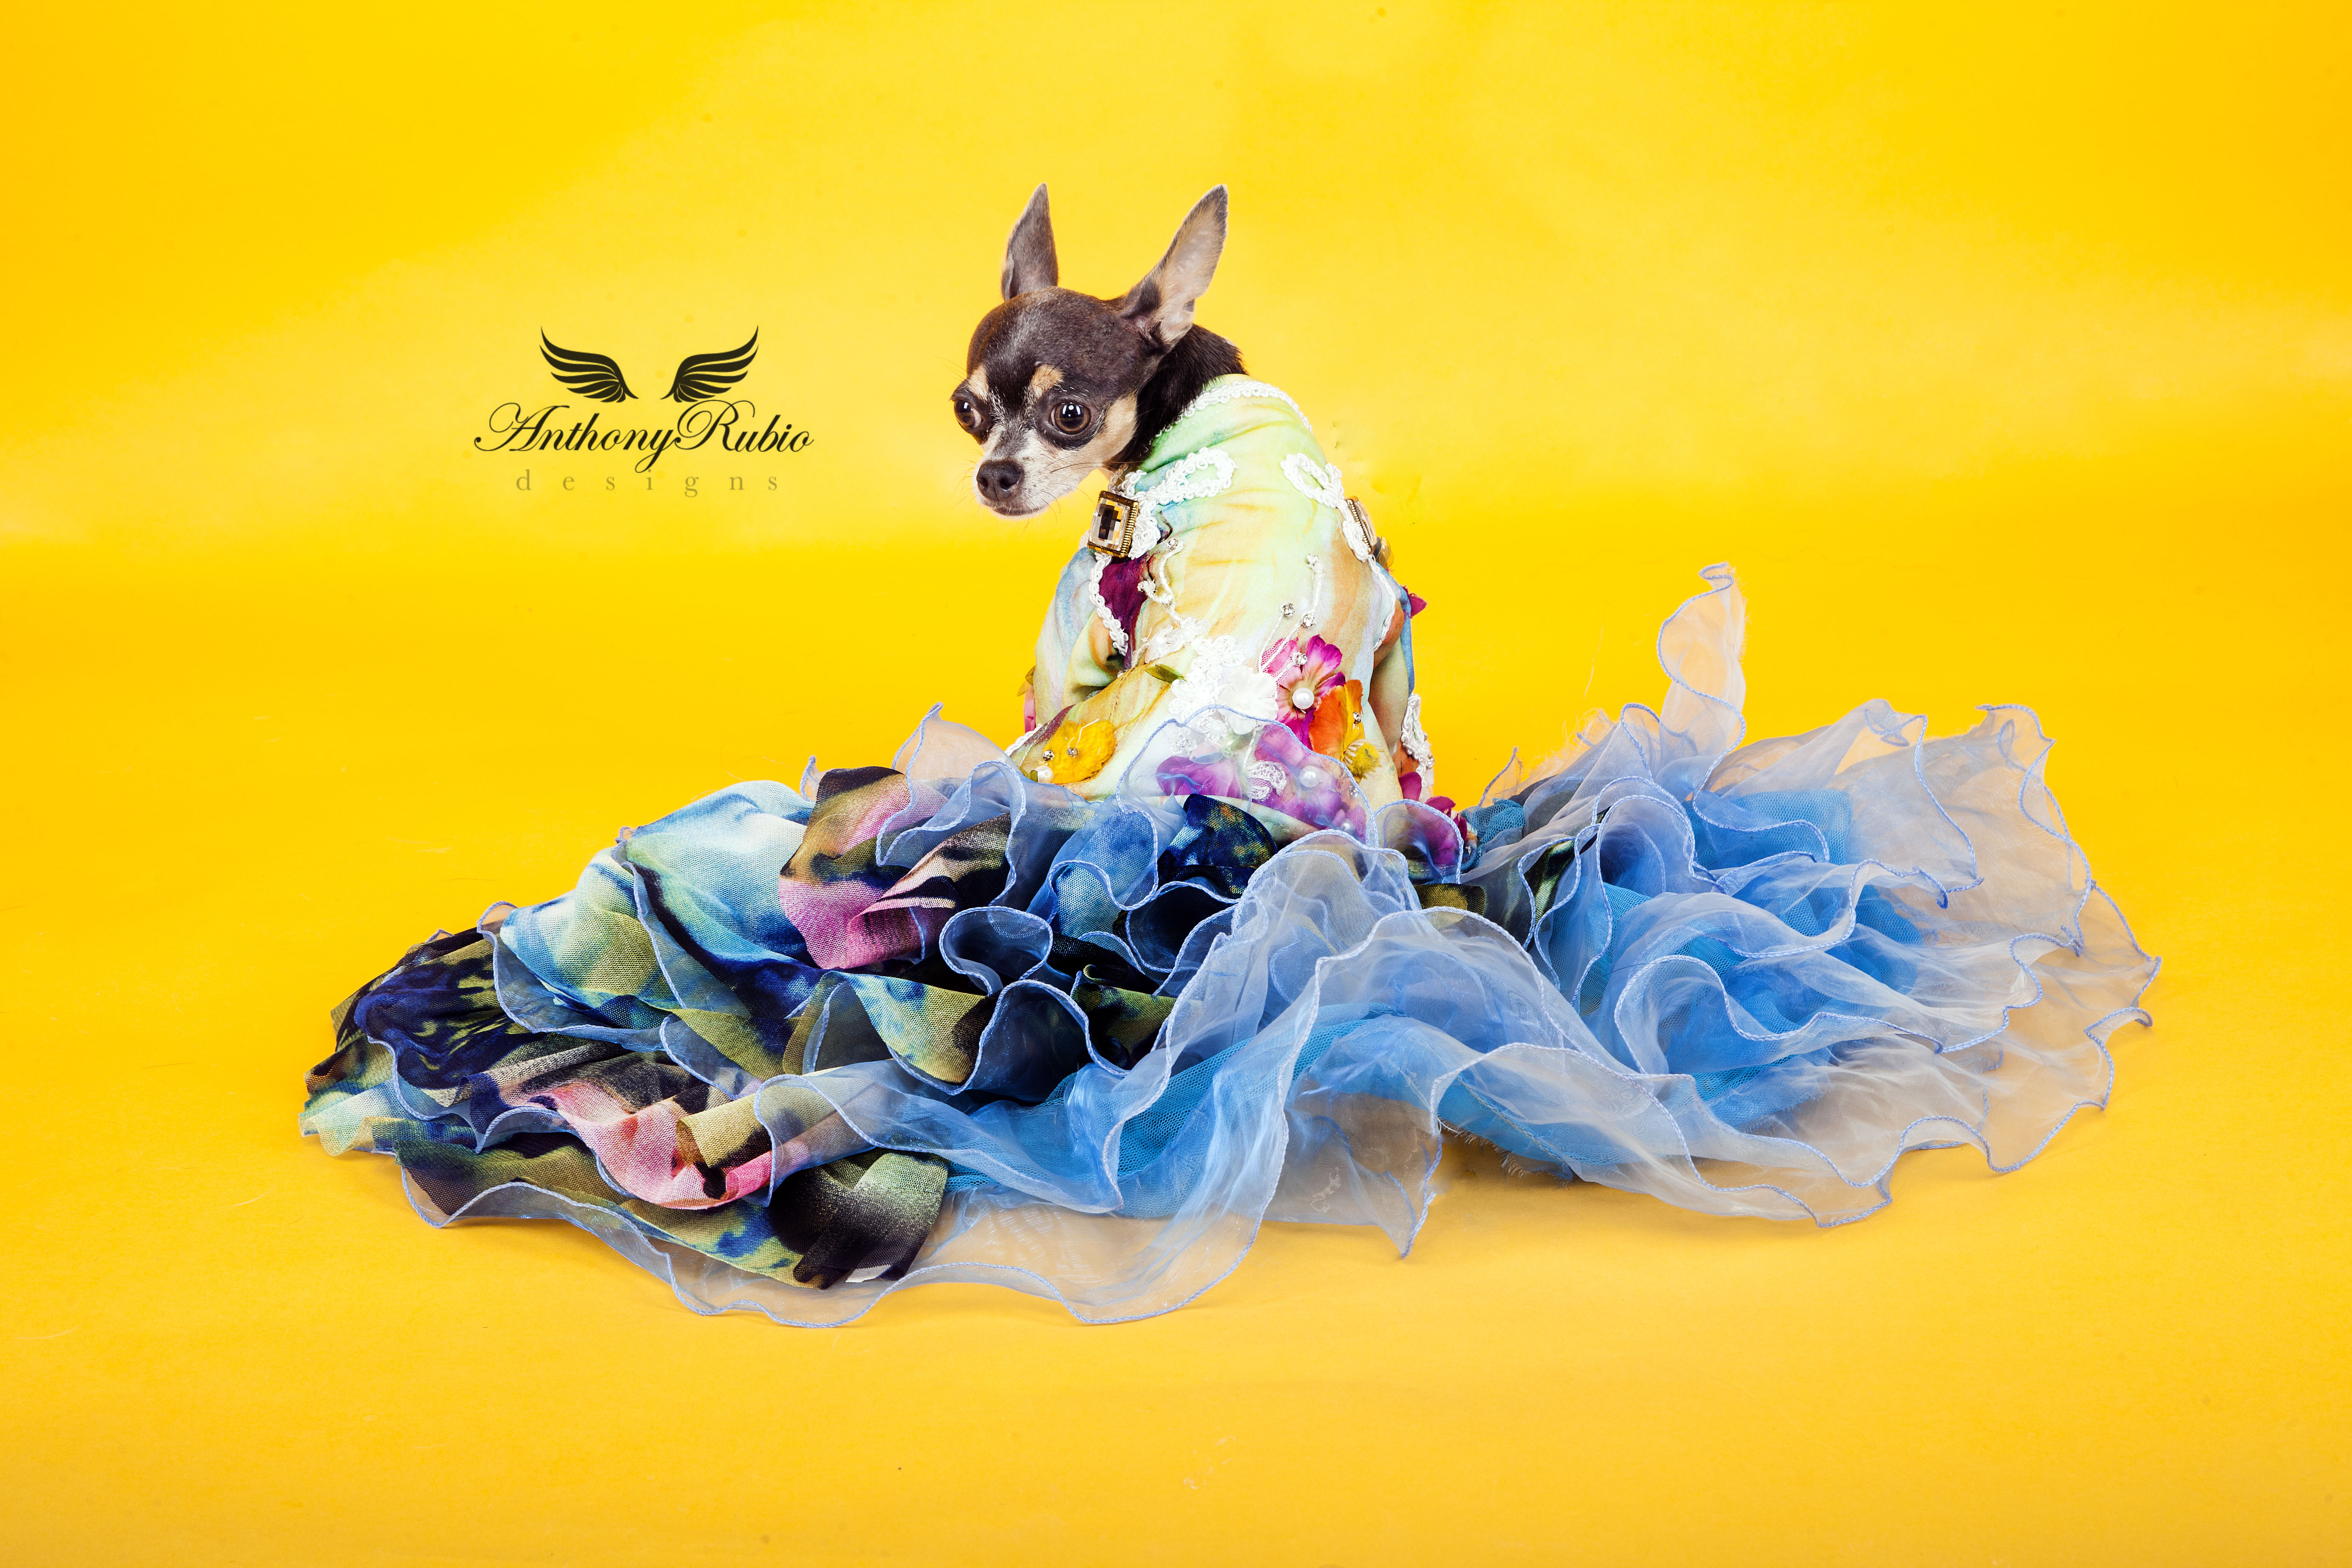 Dog Fashion by Anthony Rubio - Gowns For Dogs